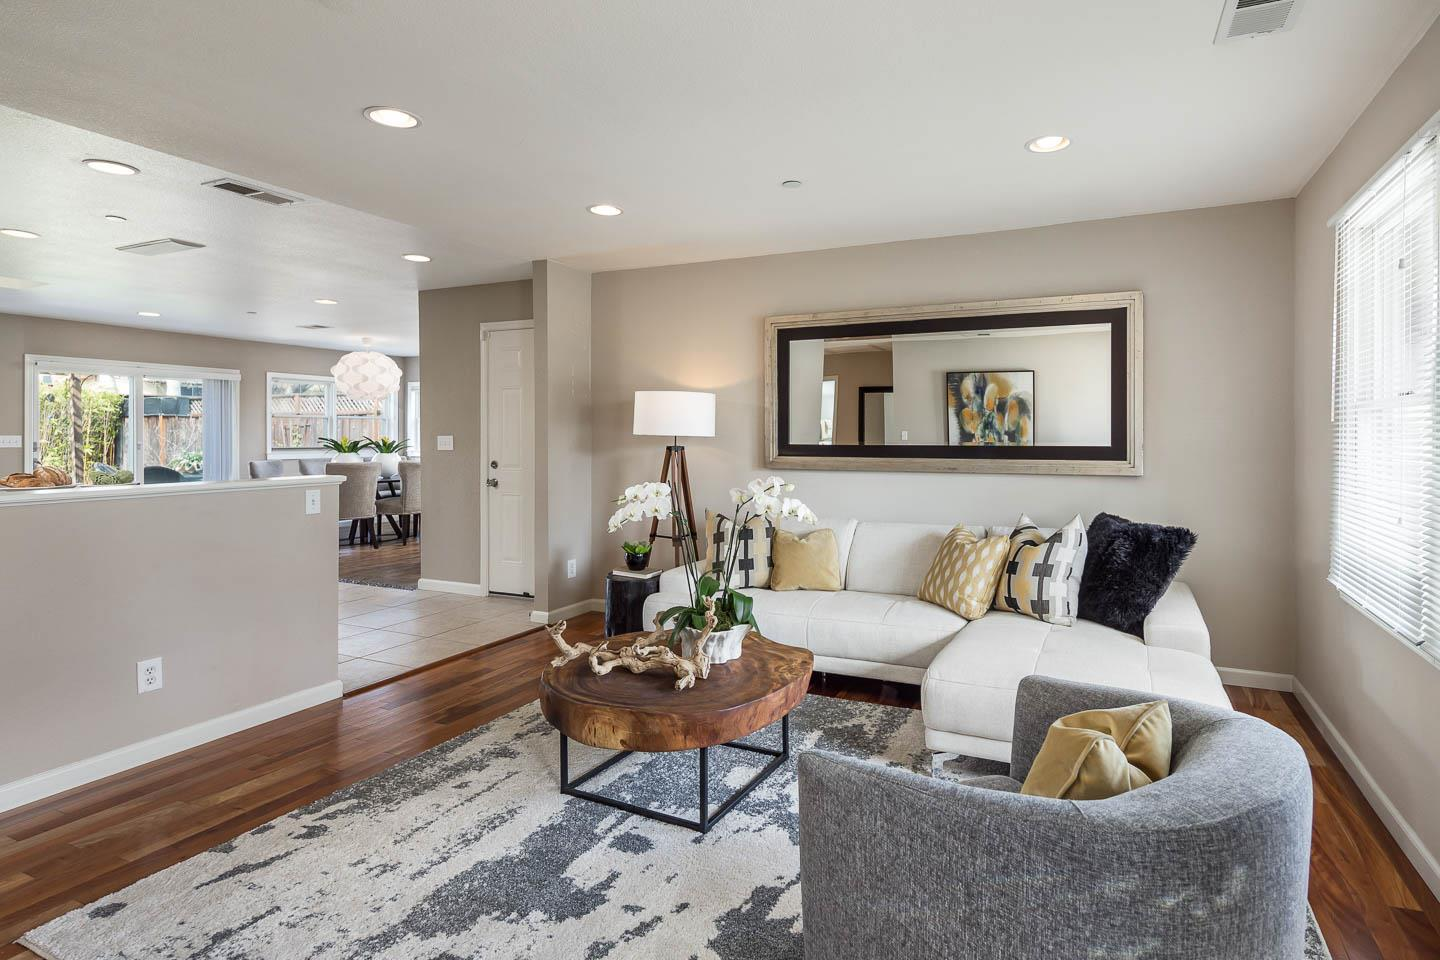 Additional photo for property listing at 363 Orchard Ave  SUNNYVALE, CALIFORNIA 94085